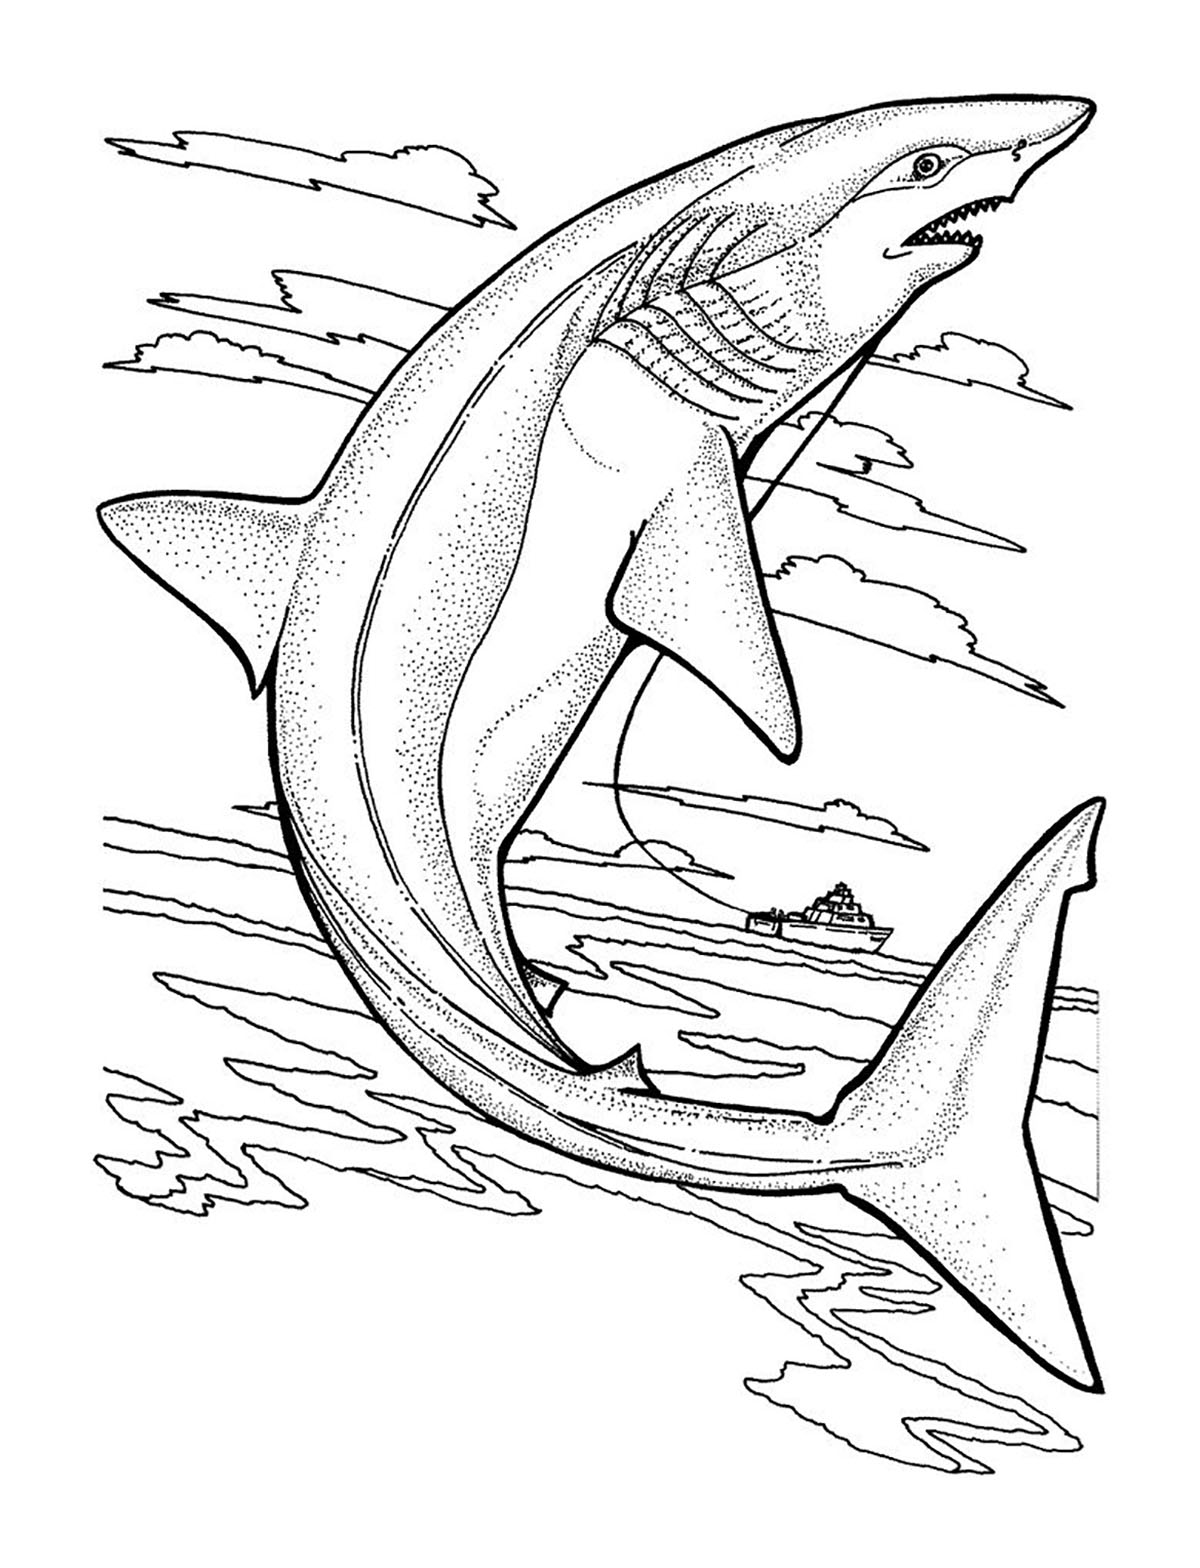 pictures of sharks to colour in free shark coloring pages in to of pictures colour sharks